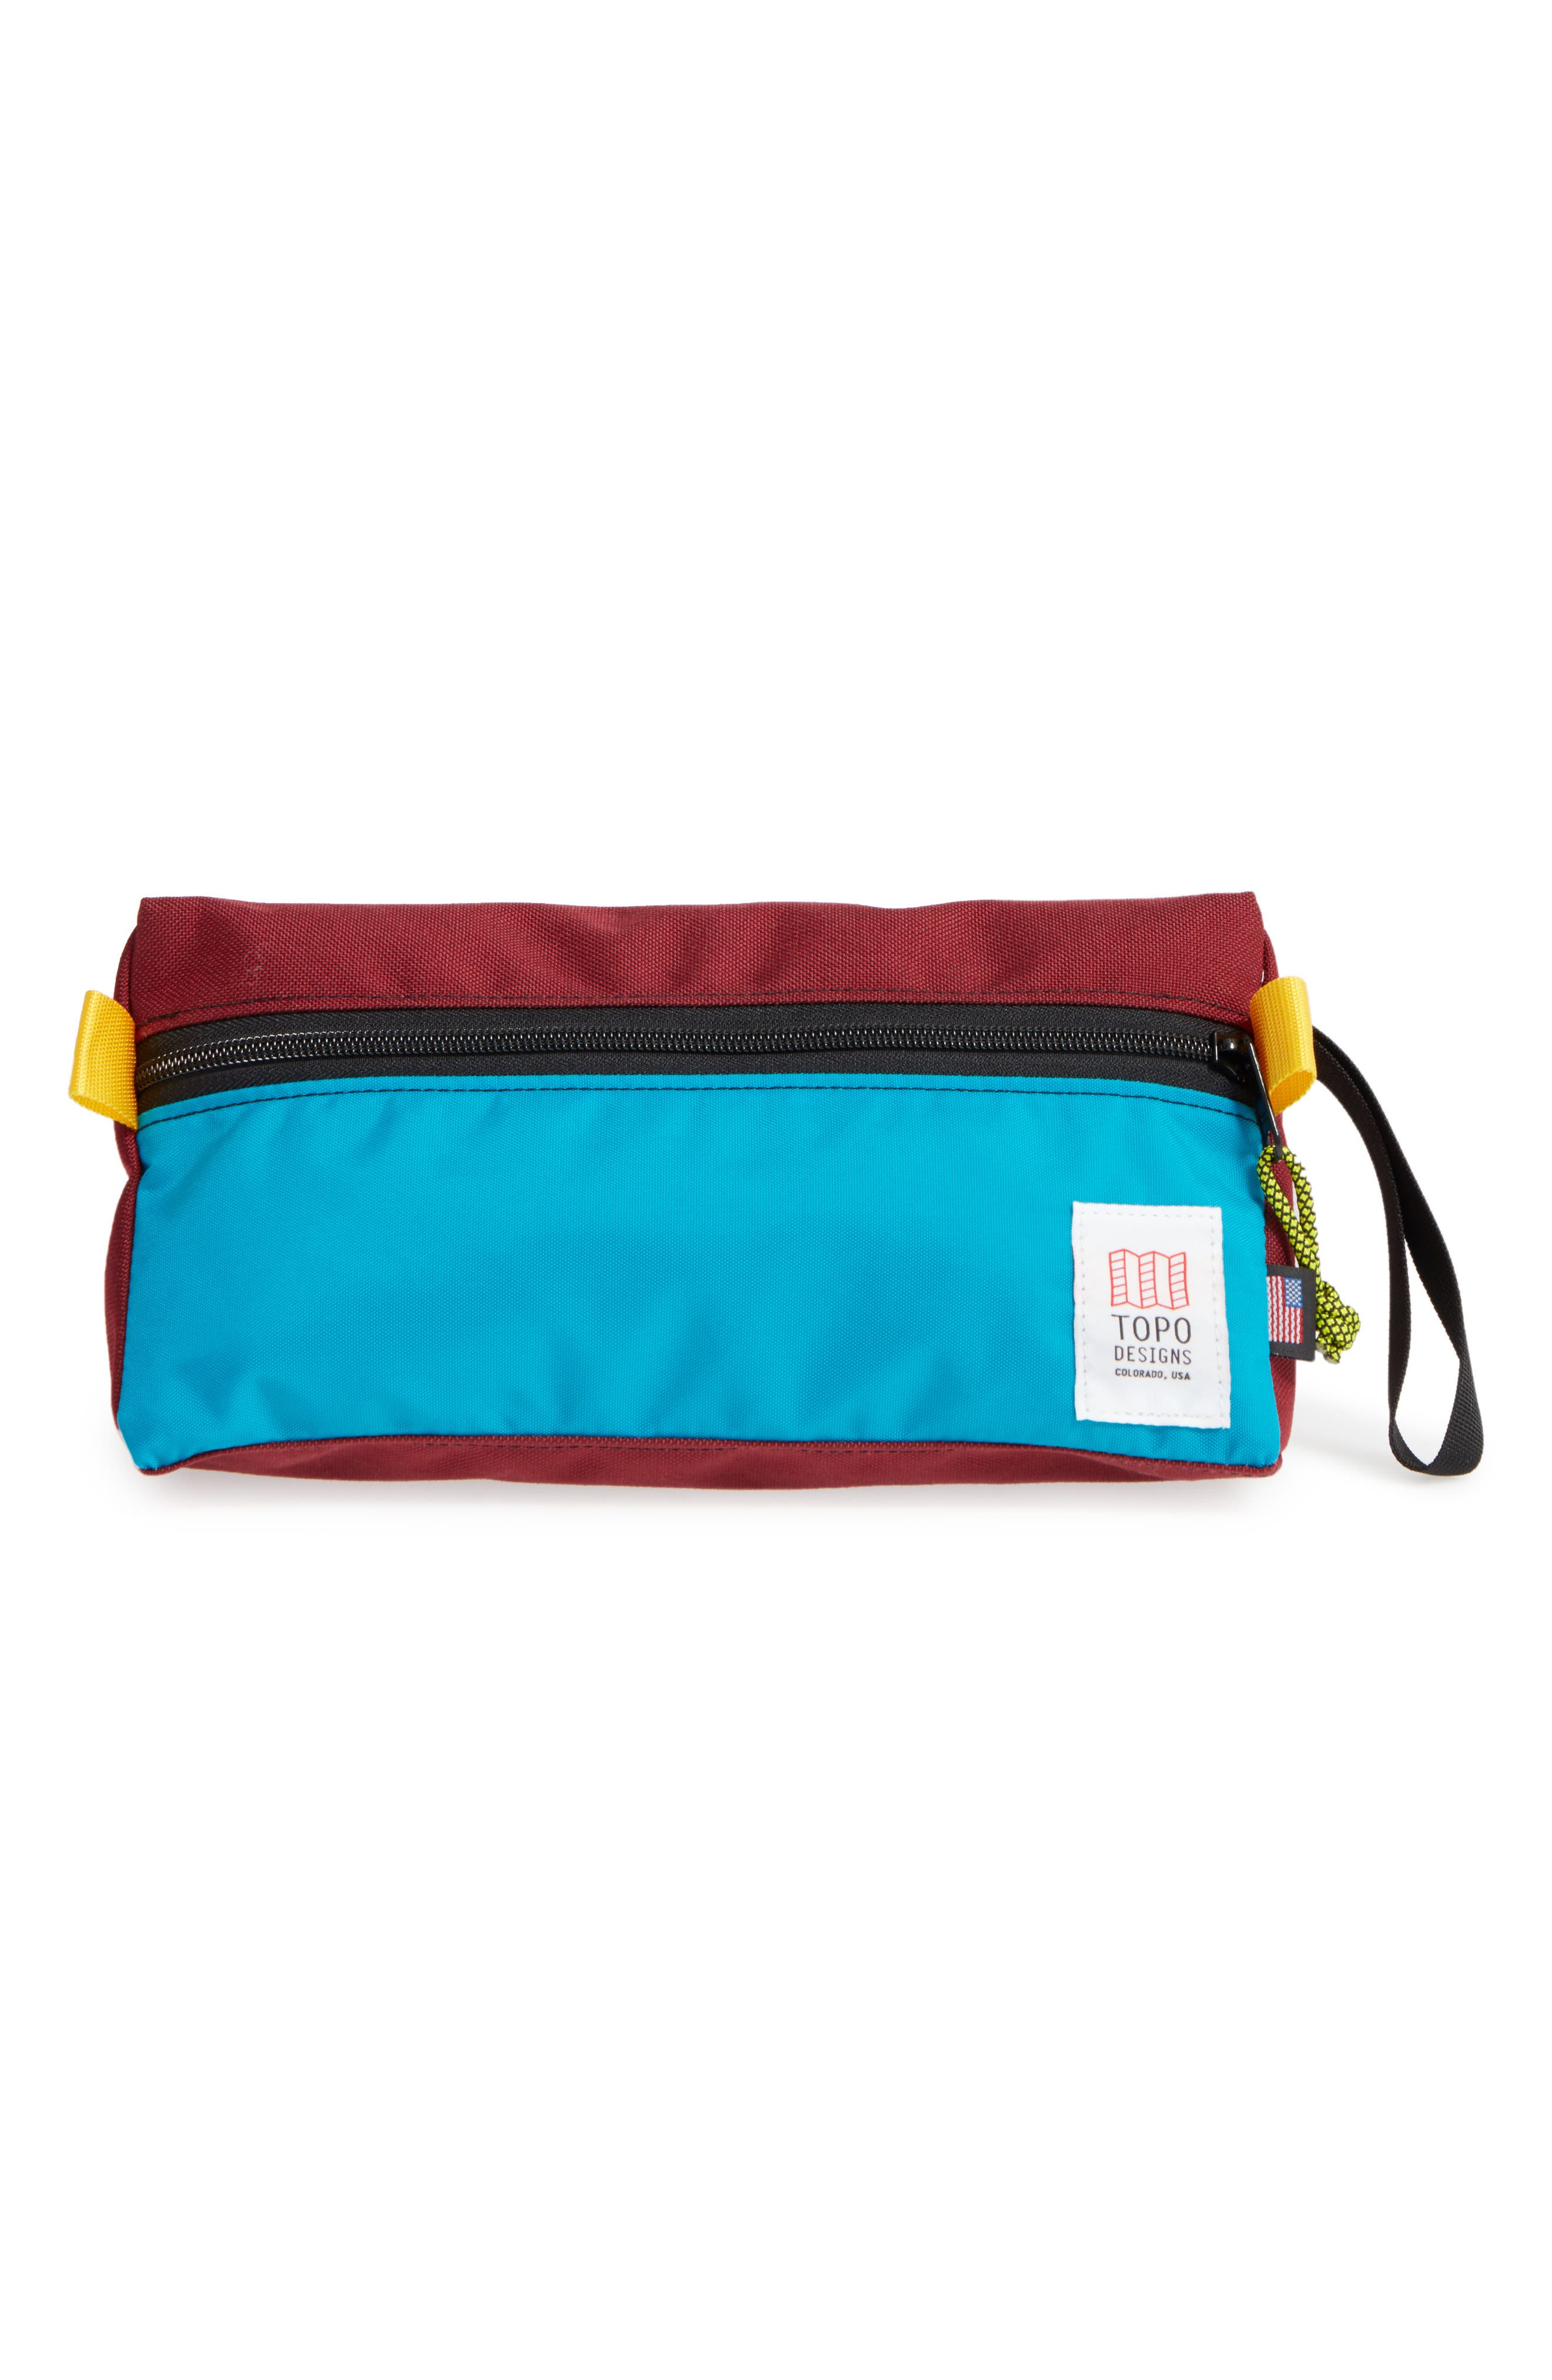 Dopp Kit,                         Main,                         color, Turquoise